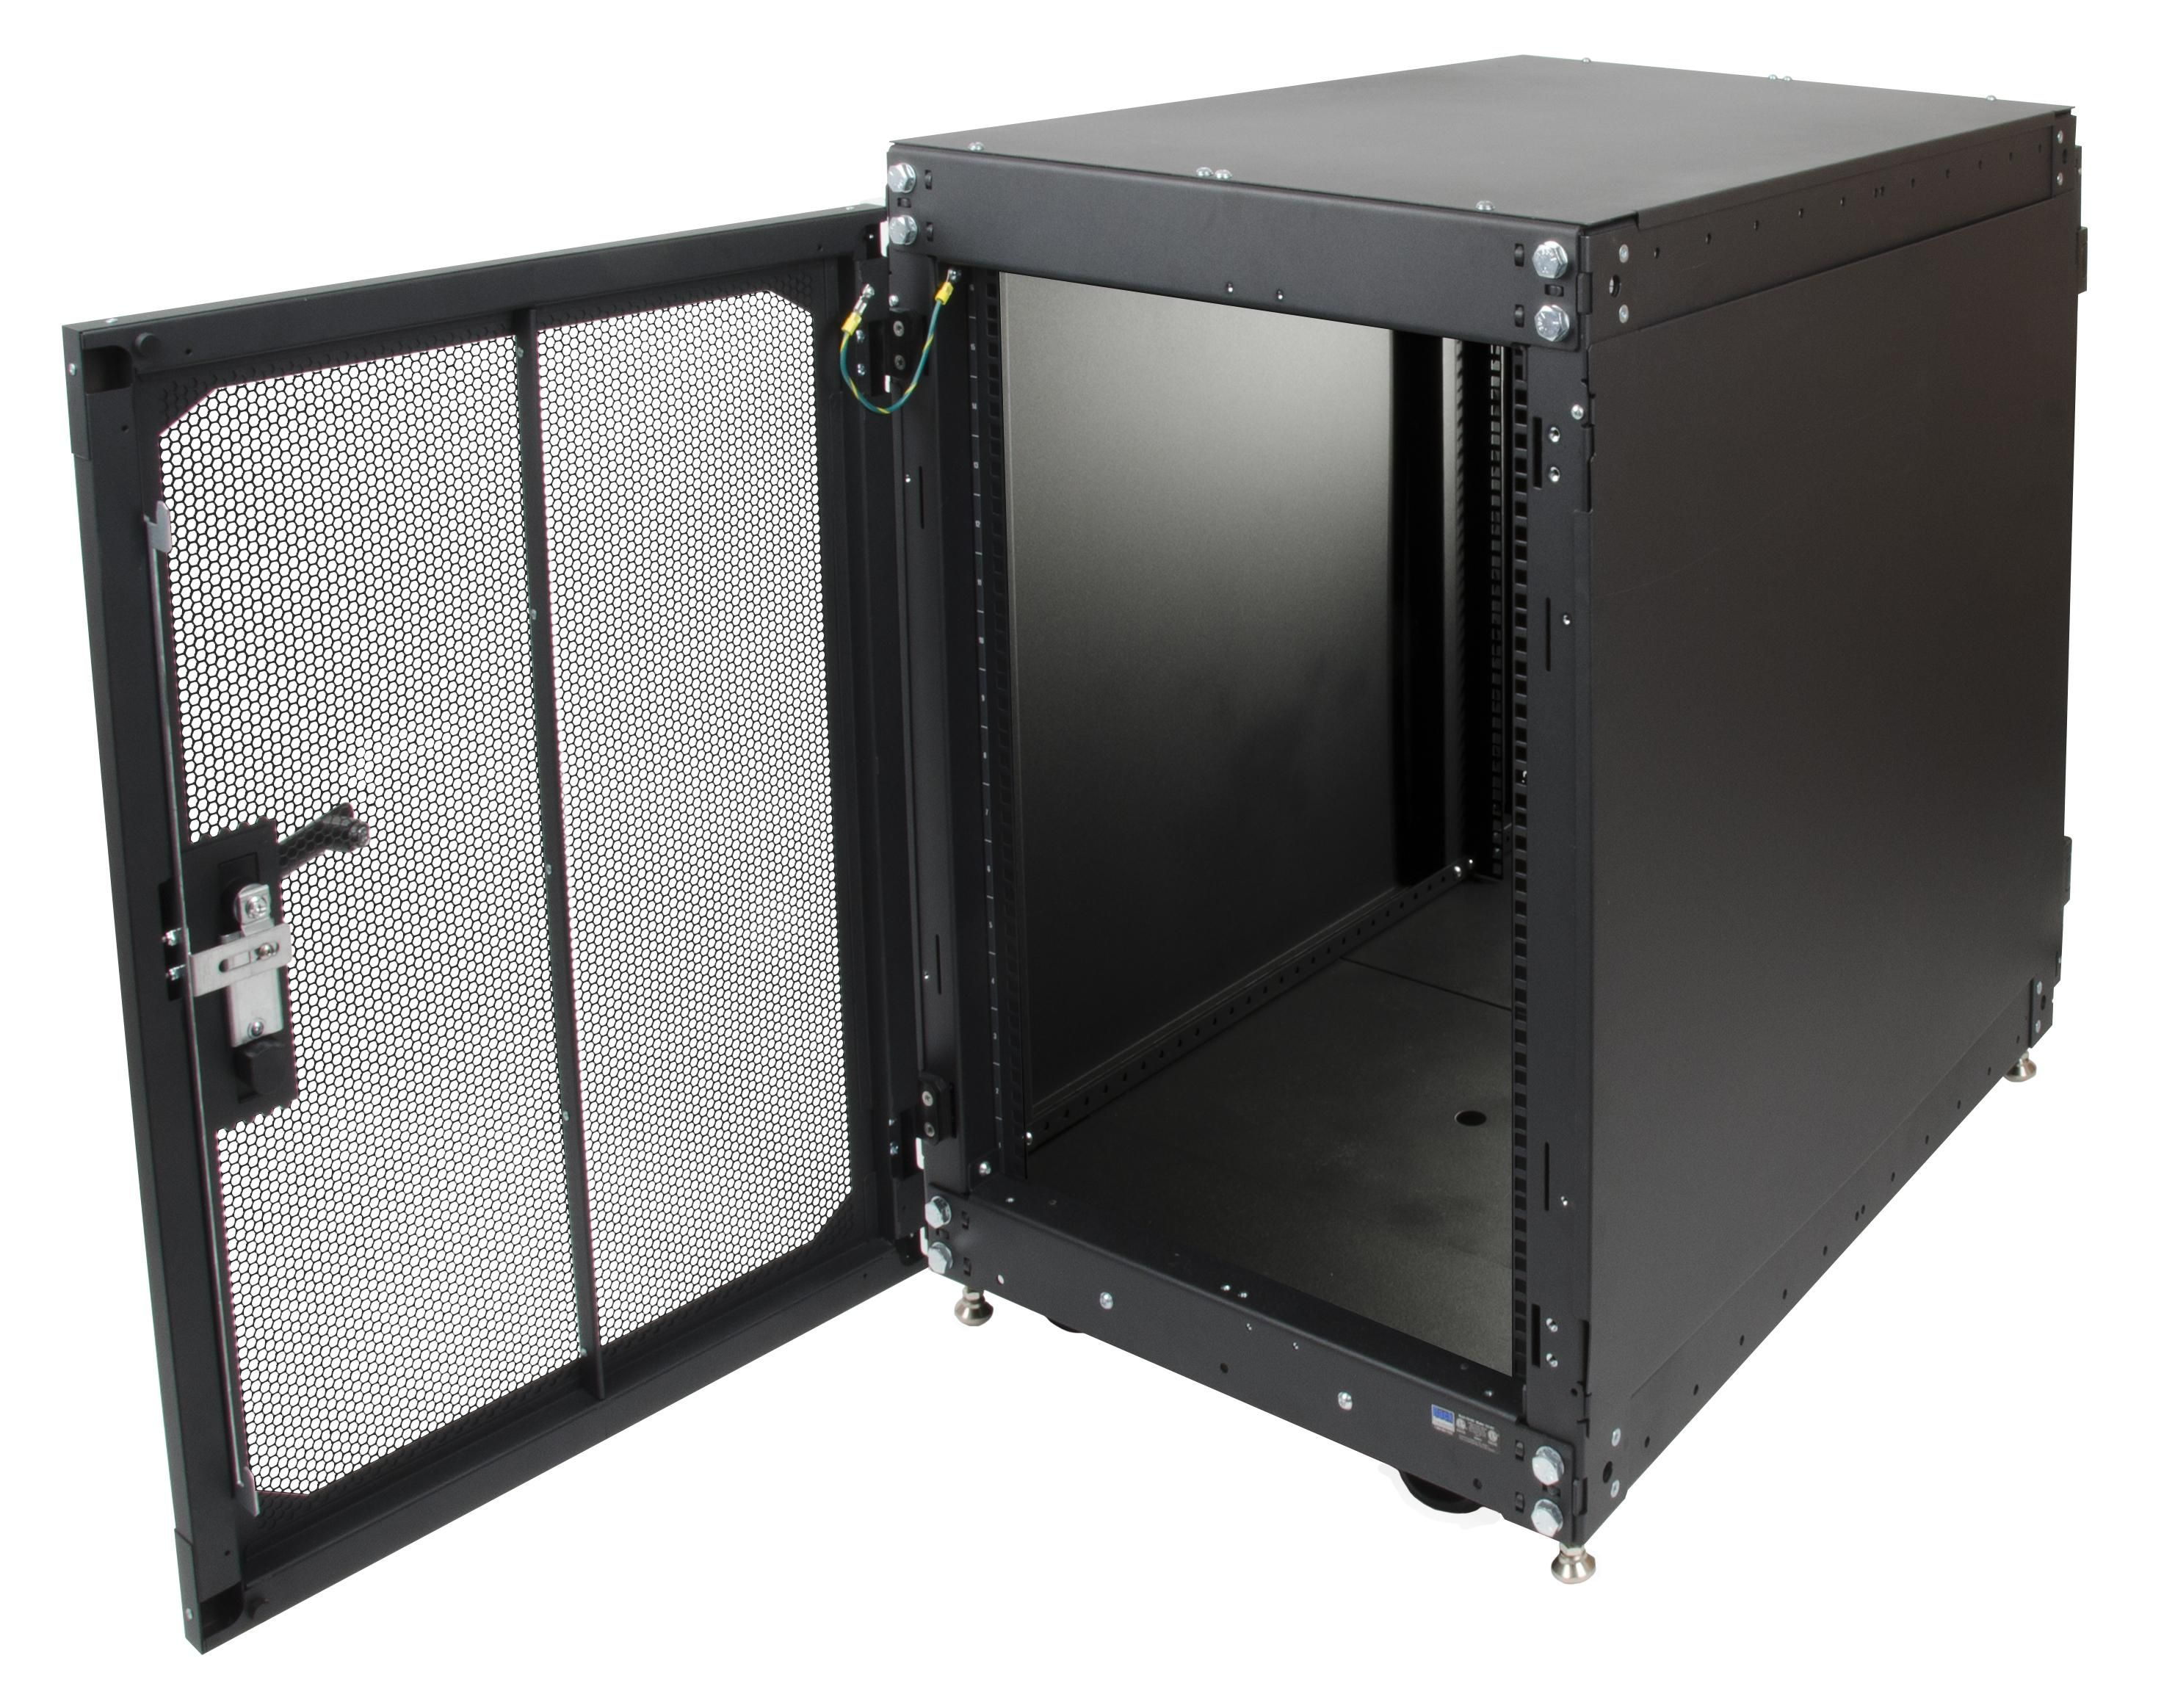 used with together cabinet racks enclosure rack of austin size bangalore full dallas in sale conjunction server